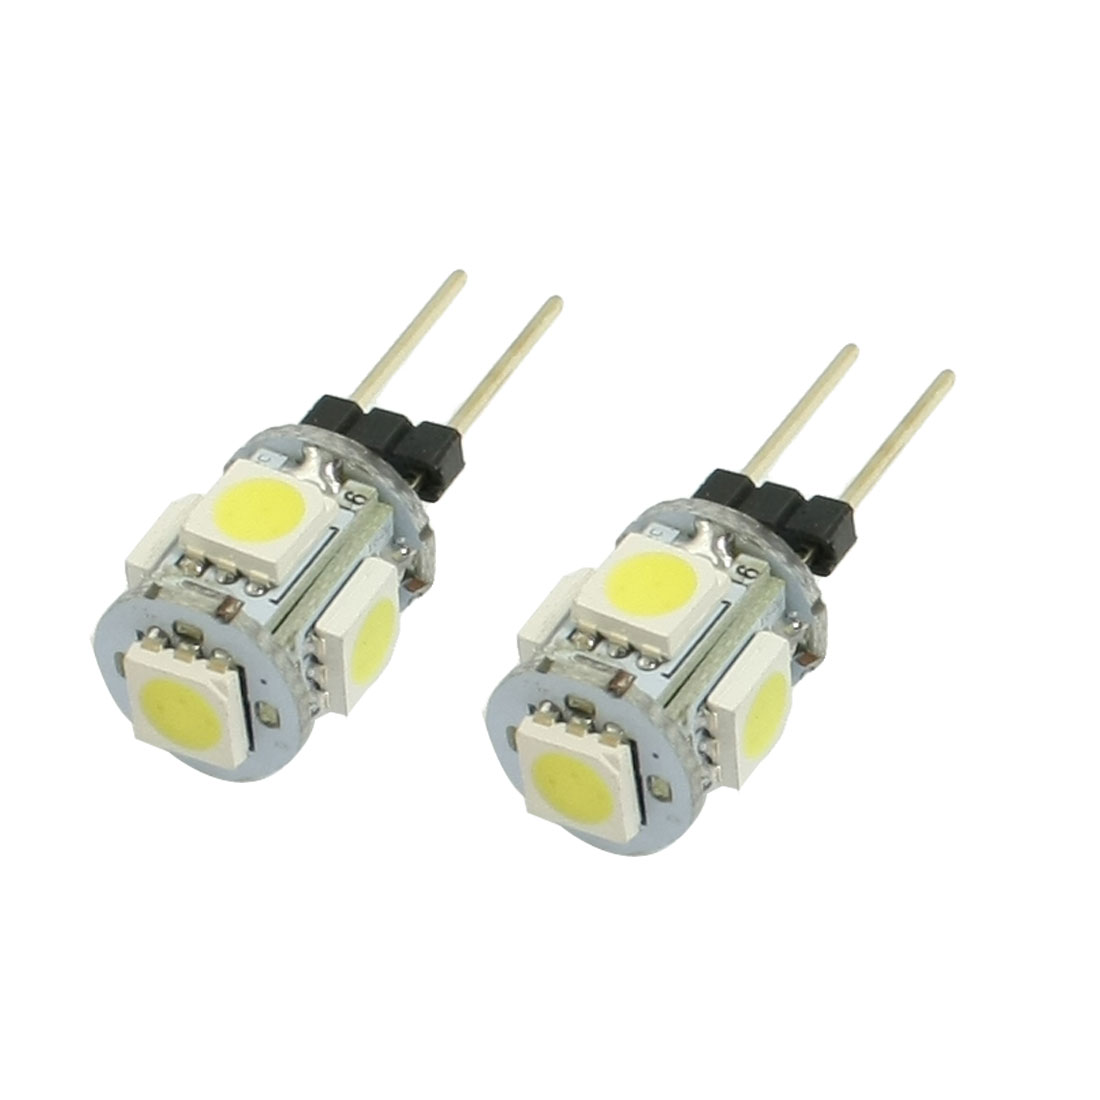 2 Pcs Vertical Pin G4 Base White 5050 SMD 5-LED Bulb Light Lamp